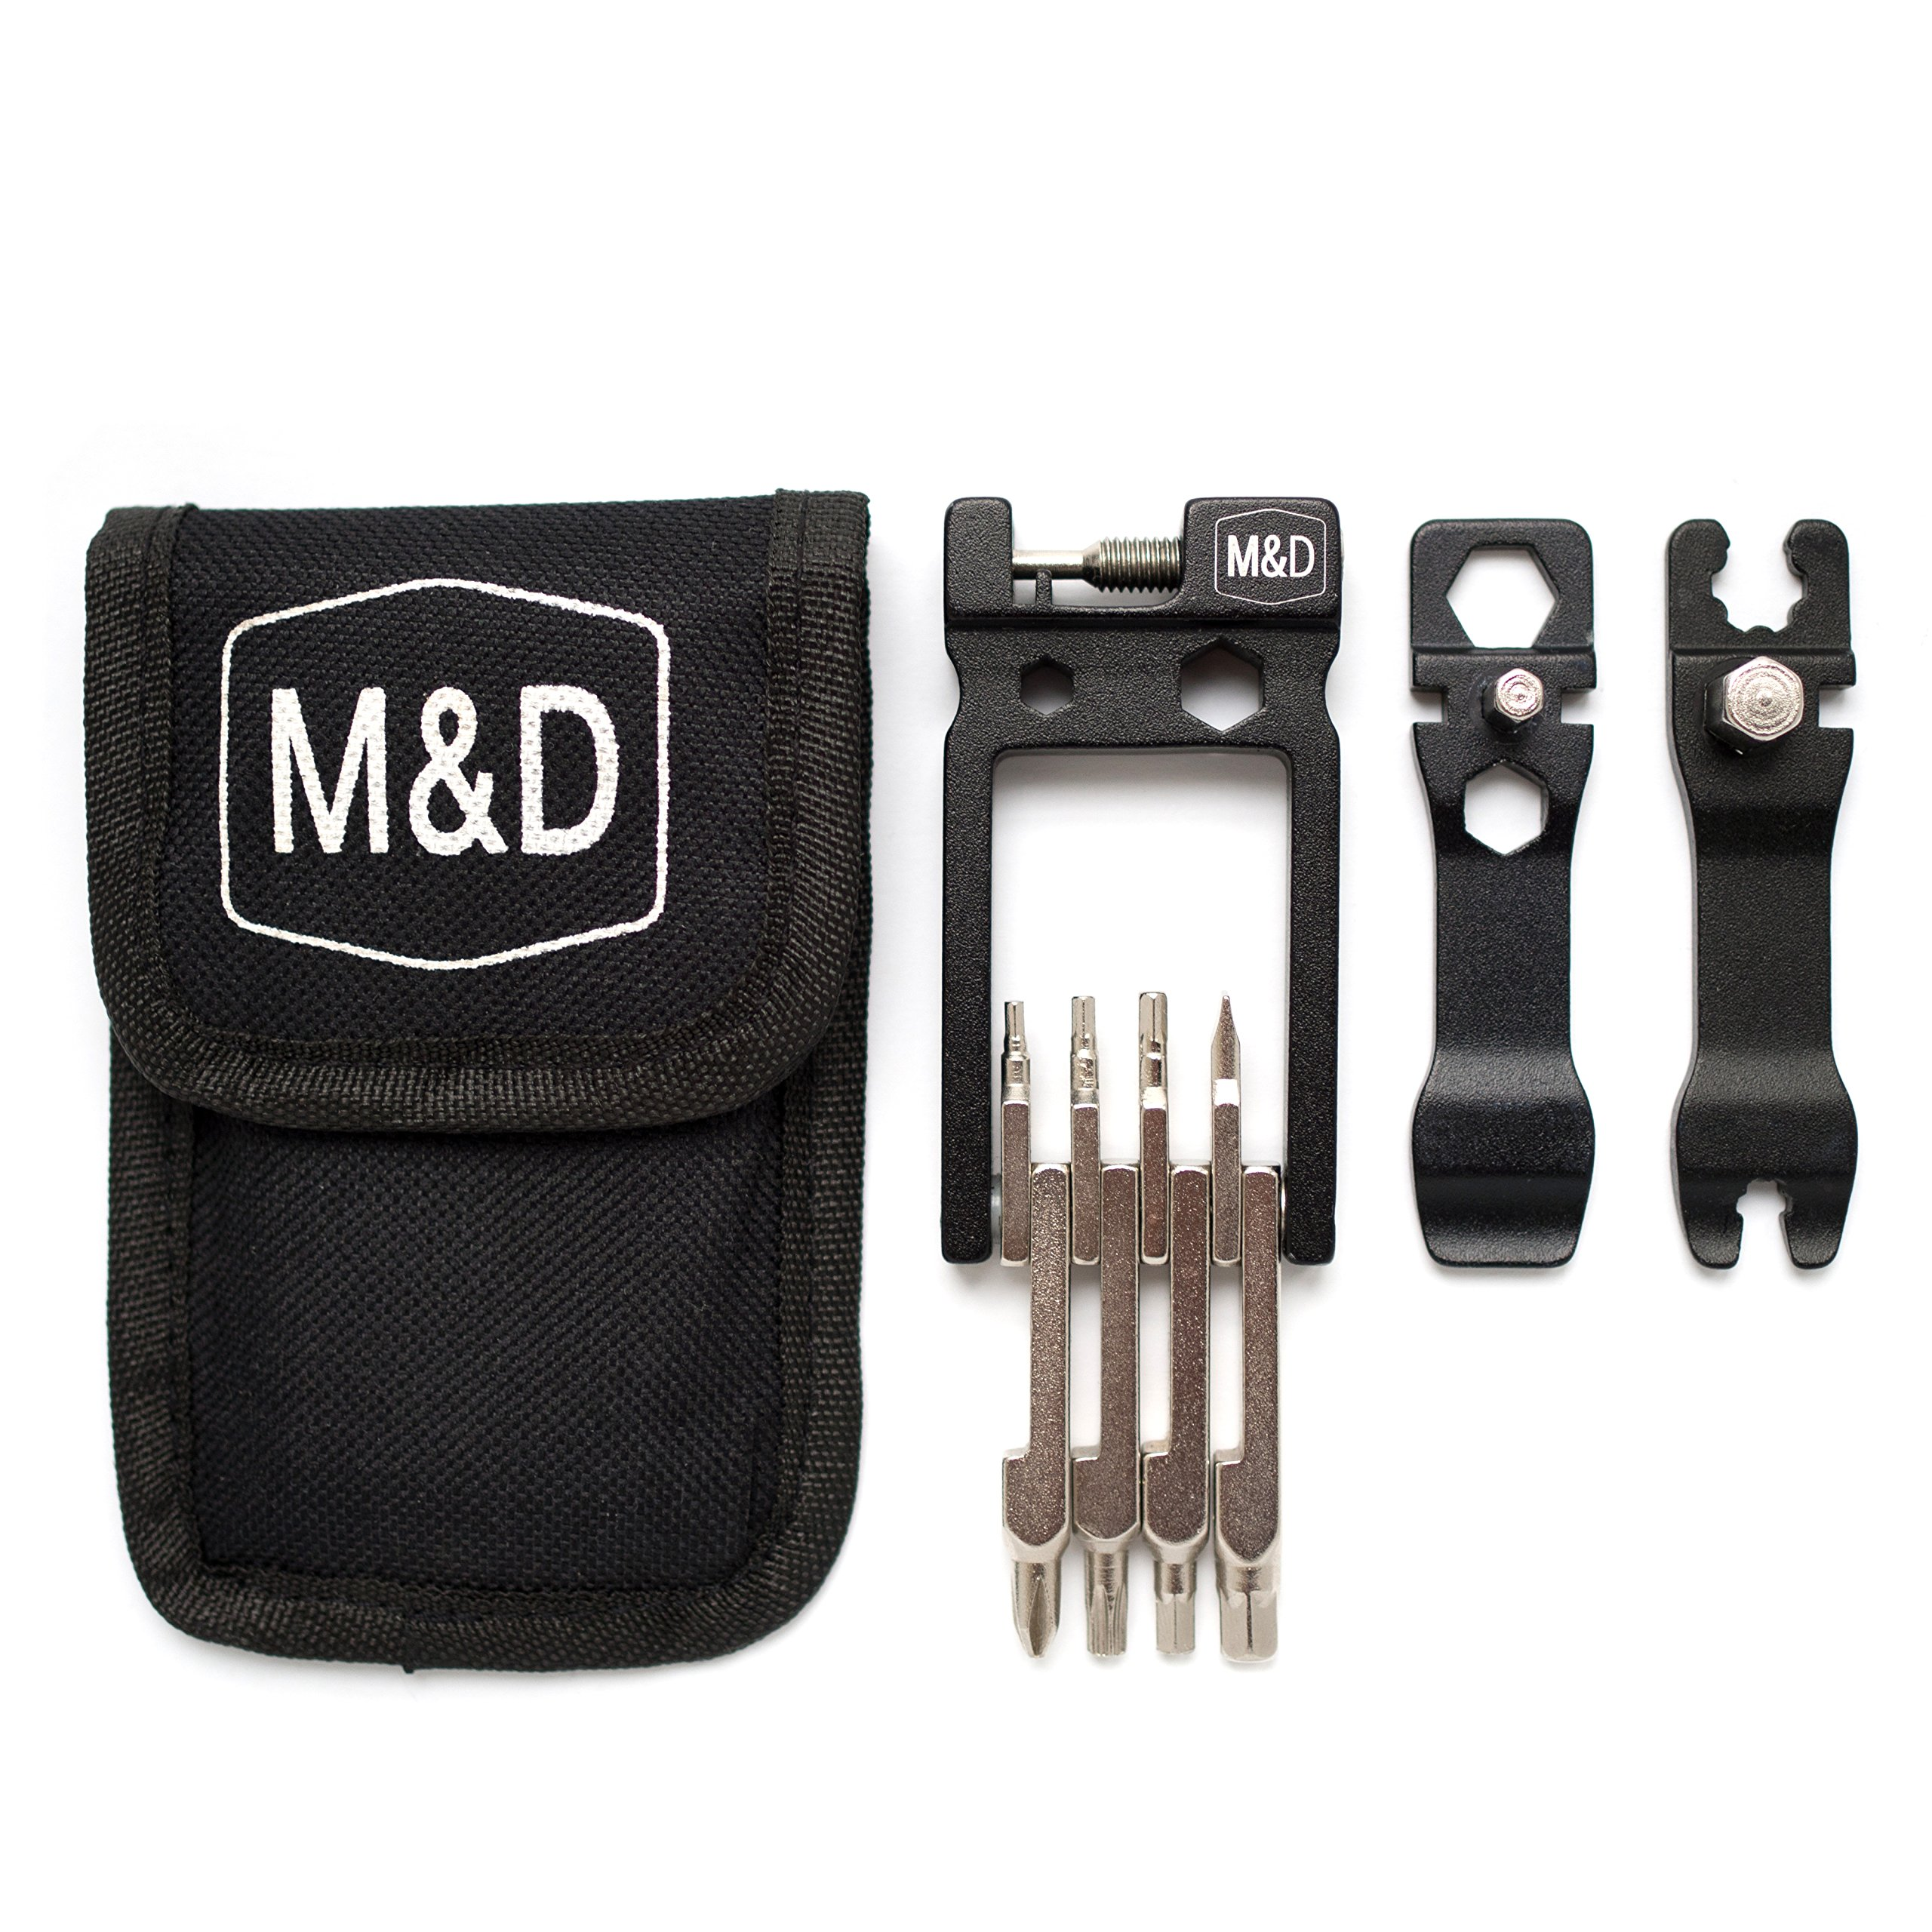 Bike Multitool MadWares 28 in 1 Bicycle Multi Tool Repair Kit with Wrench Set by M&D Wares (Image #8)